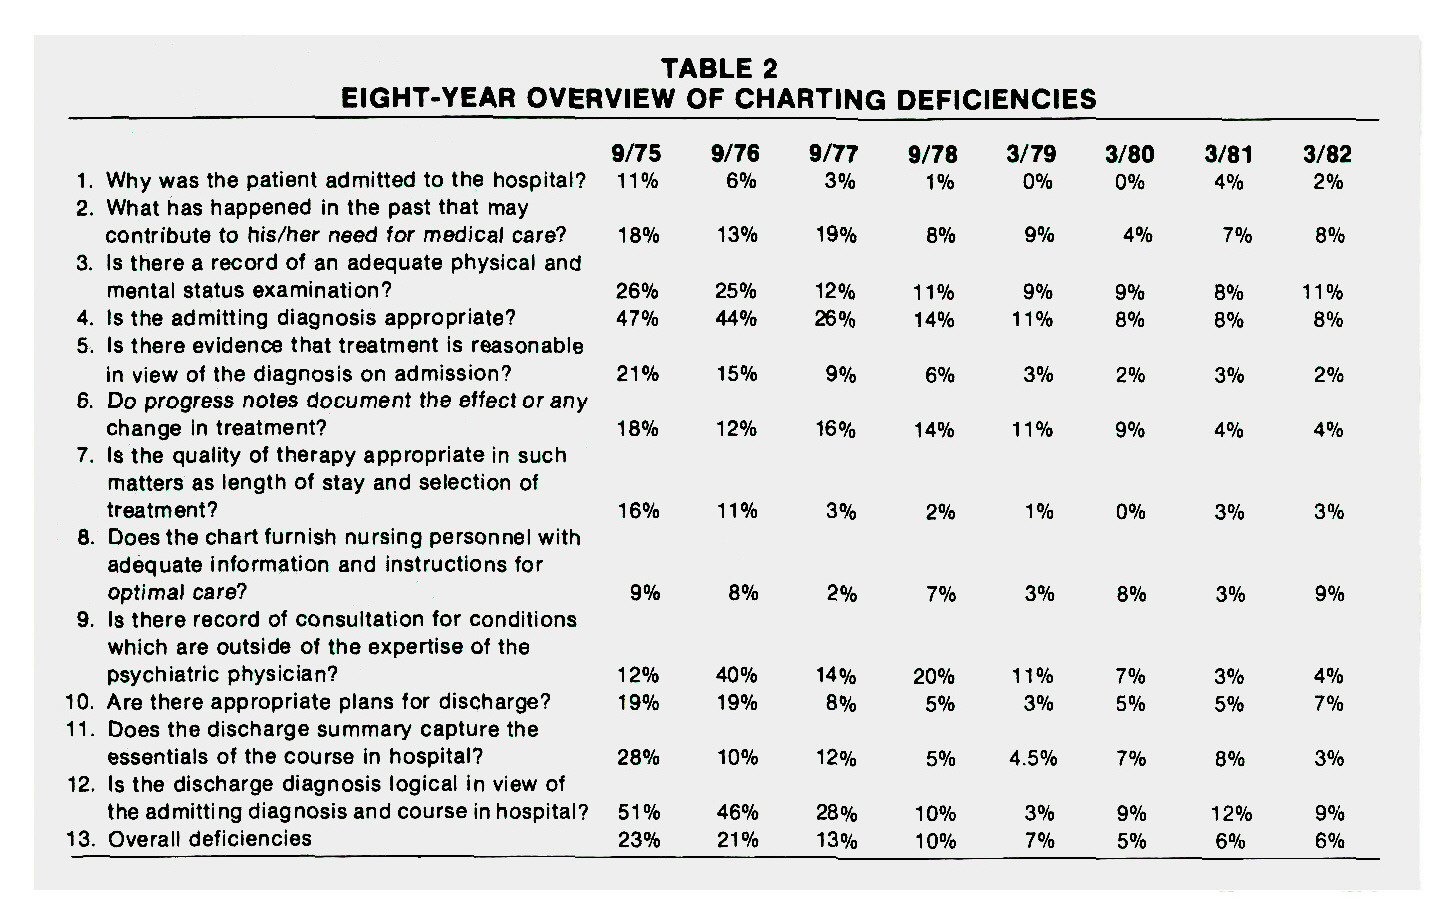 TABLE 2EIGHT-YEAR OVERVIEW OF CHARTING DEFICIENCIES